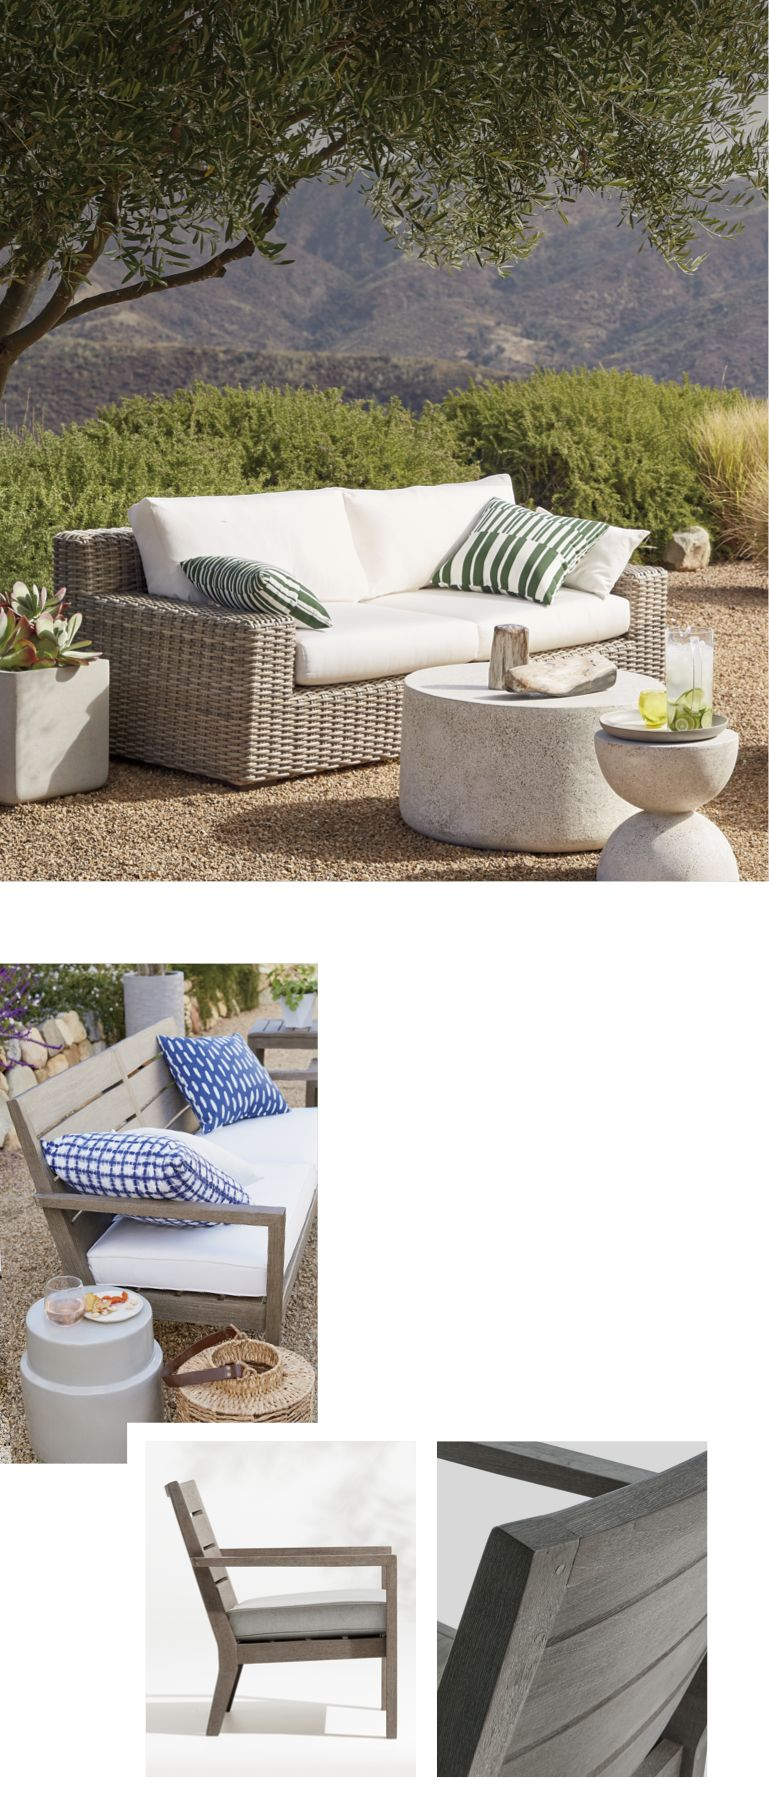 Best Outdoor Patio Furniture Crate And Barrel - Garden Furniture Clearance Co Reviews